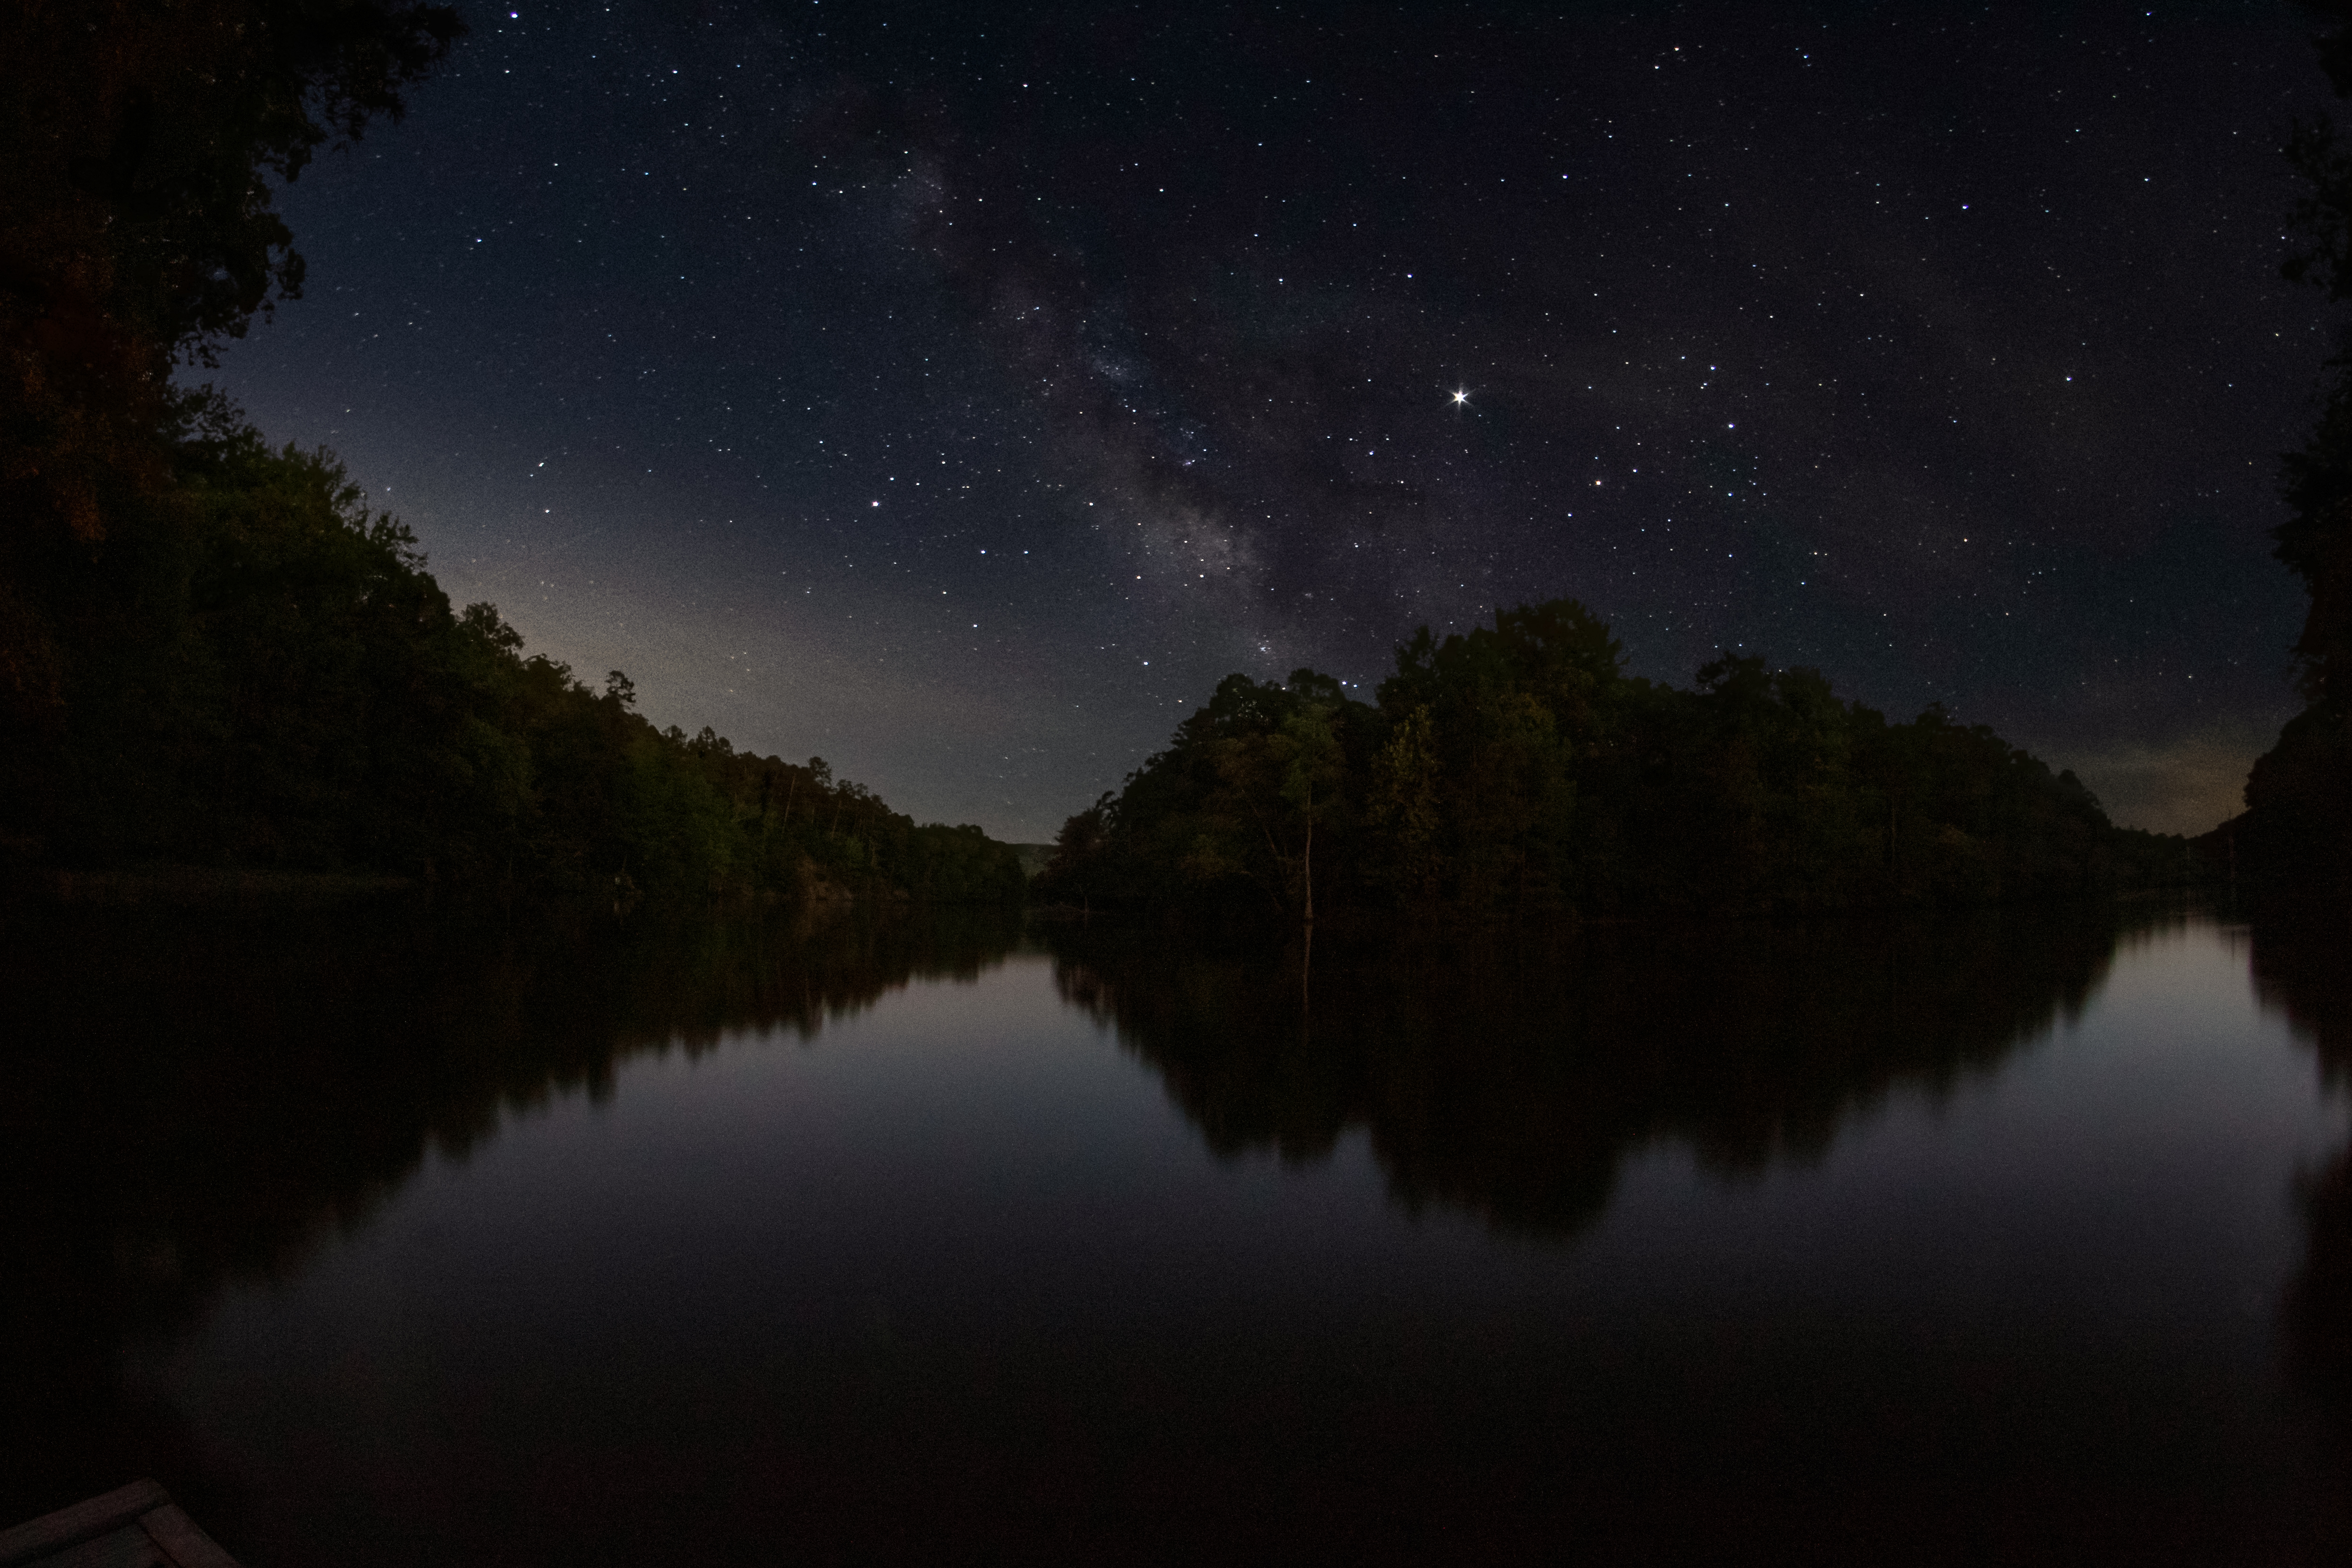 Milky Way night sky over calm waters of the Maumelle River